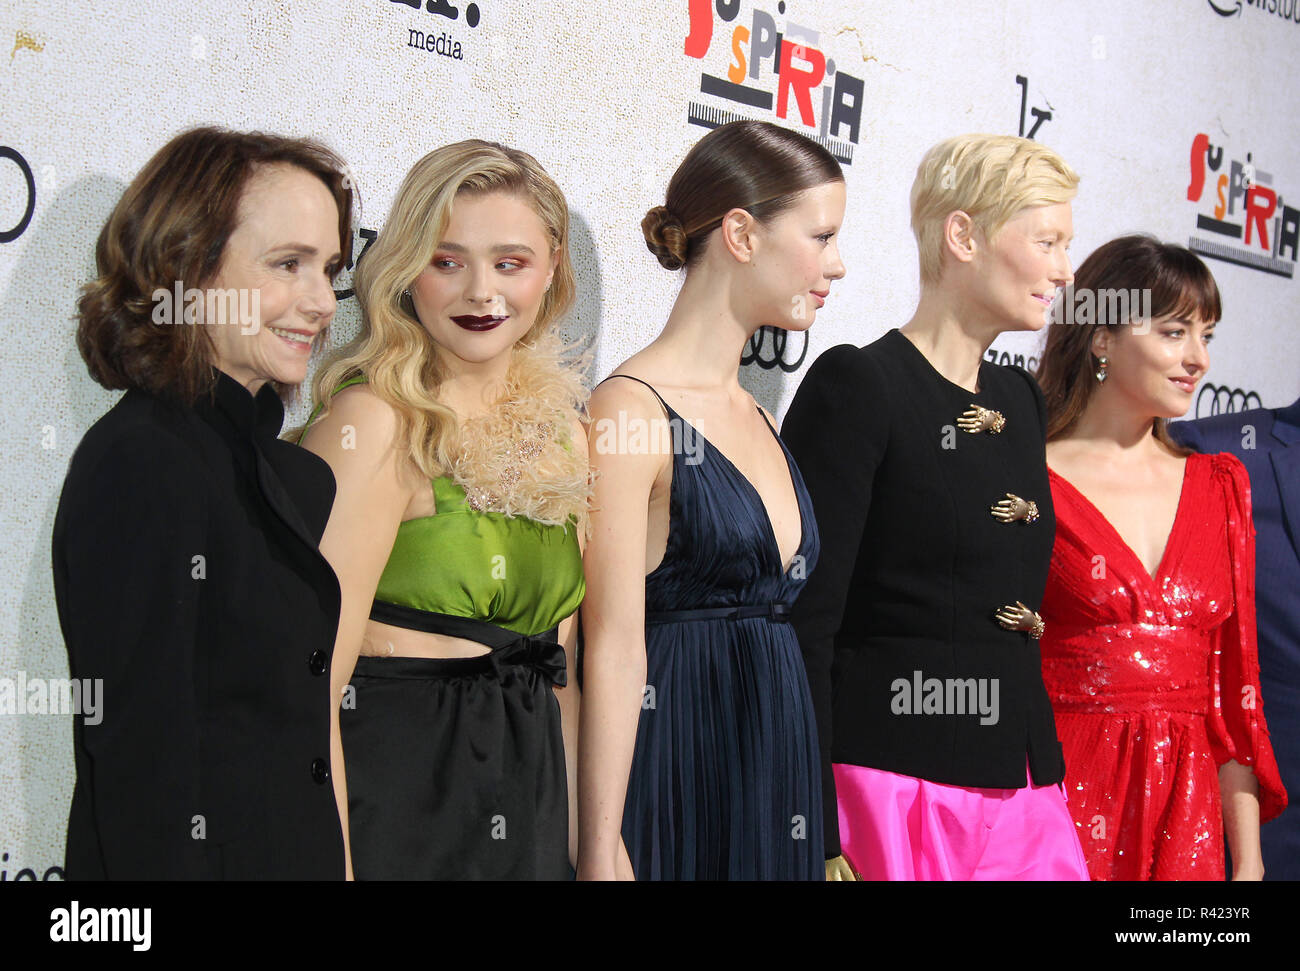 """Suspiria"" Los Angeles Premiere detenute al Arclight cinema di Hollywood cupola in Los Angeles, California. Dotato di: Jessica Harper, Chloe Grace Moretz, Mia Goth, Tilda Swinton, Dakota Johnson dove: Los Angeles, California, Stati Uniti quando: 24 Ott 2018 Credit: Adriana M. Barraza/WENN.com Foto Stock"